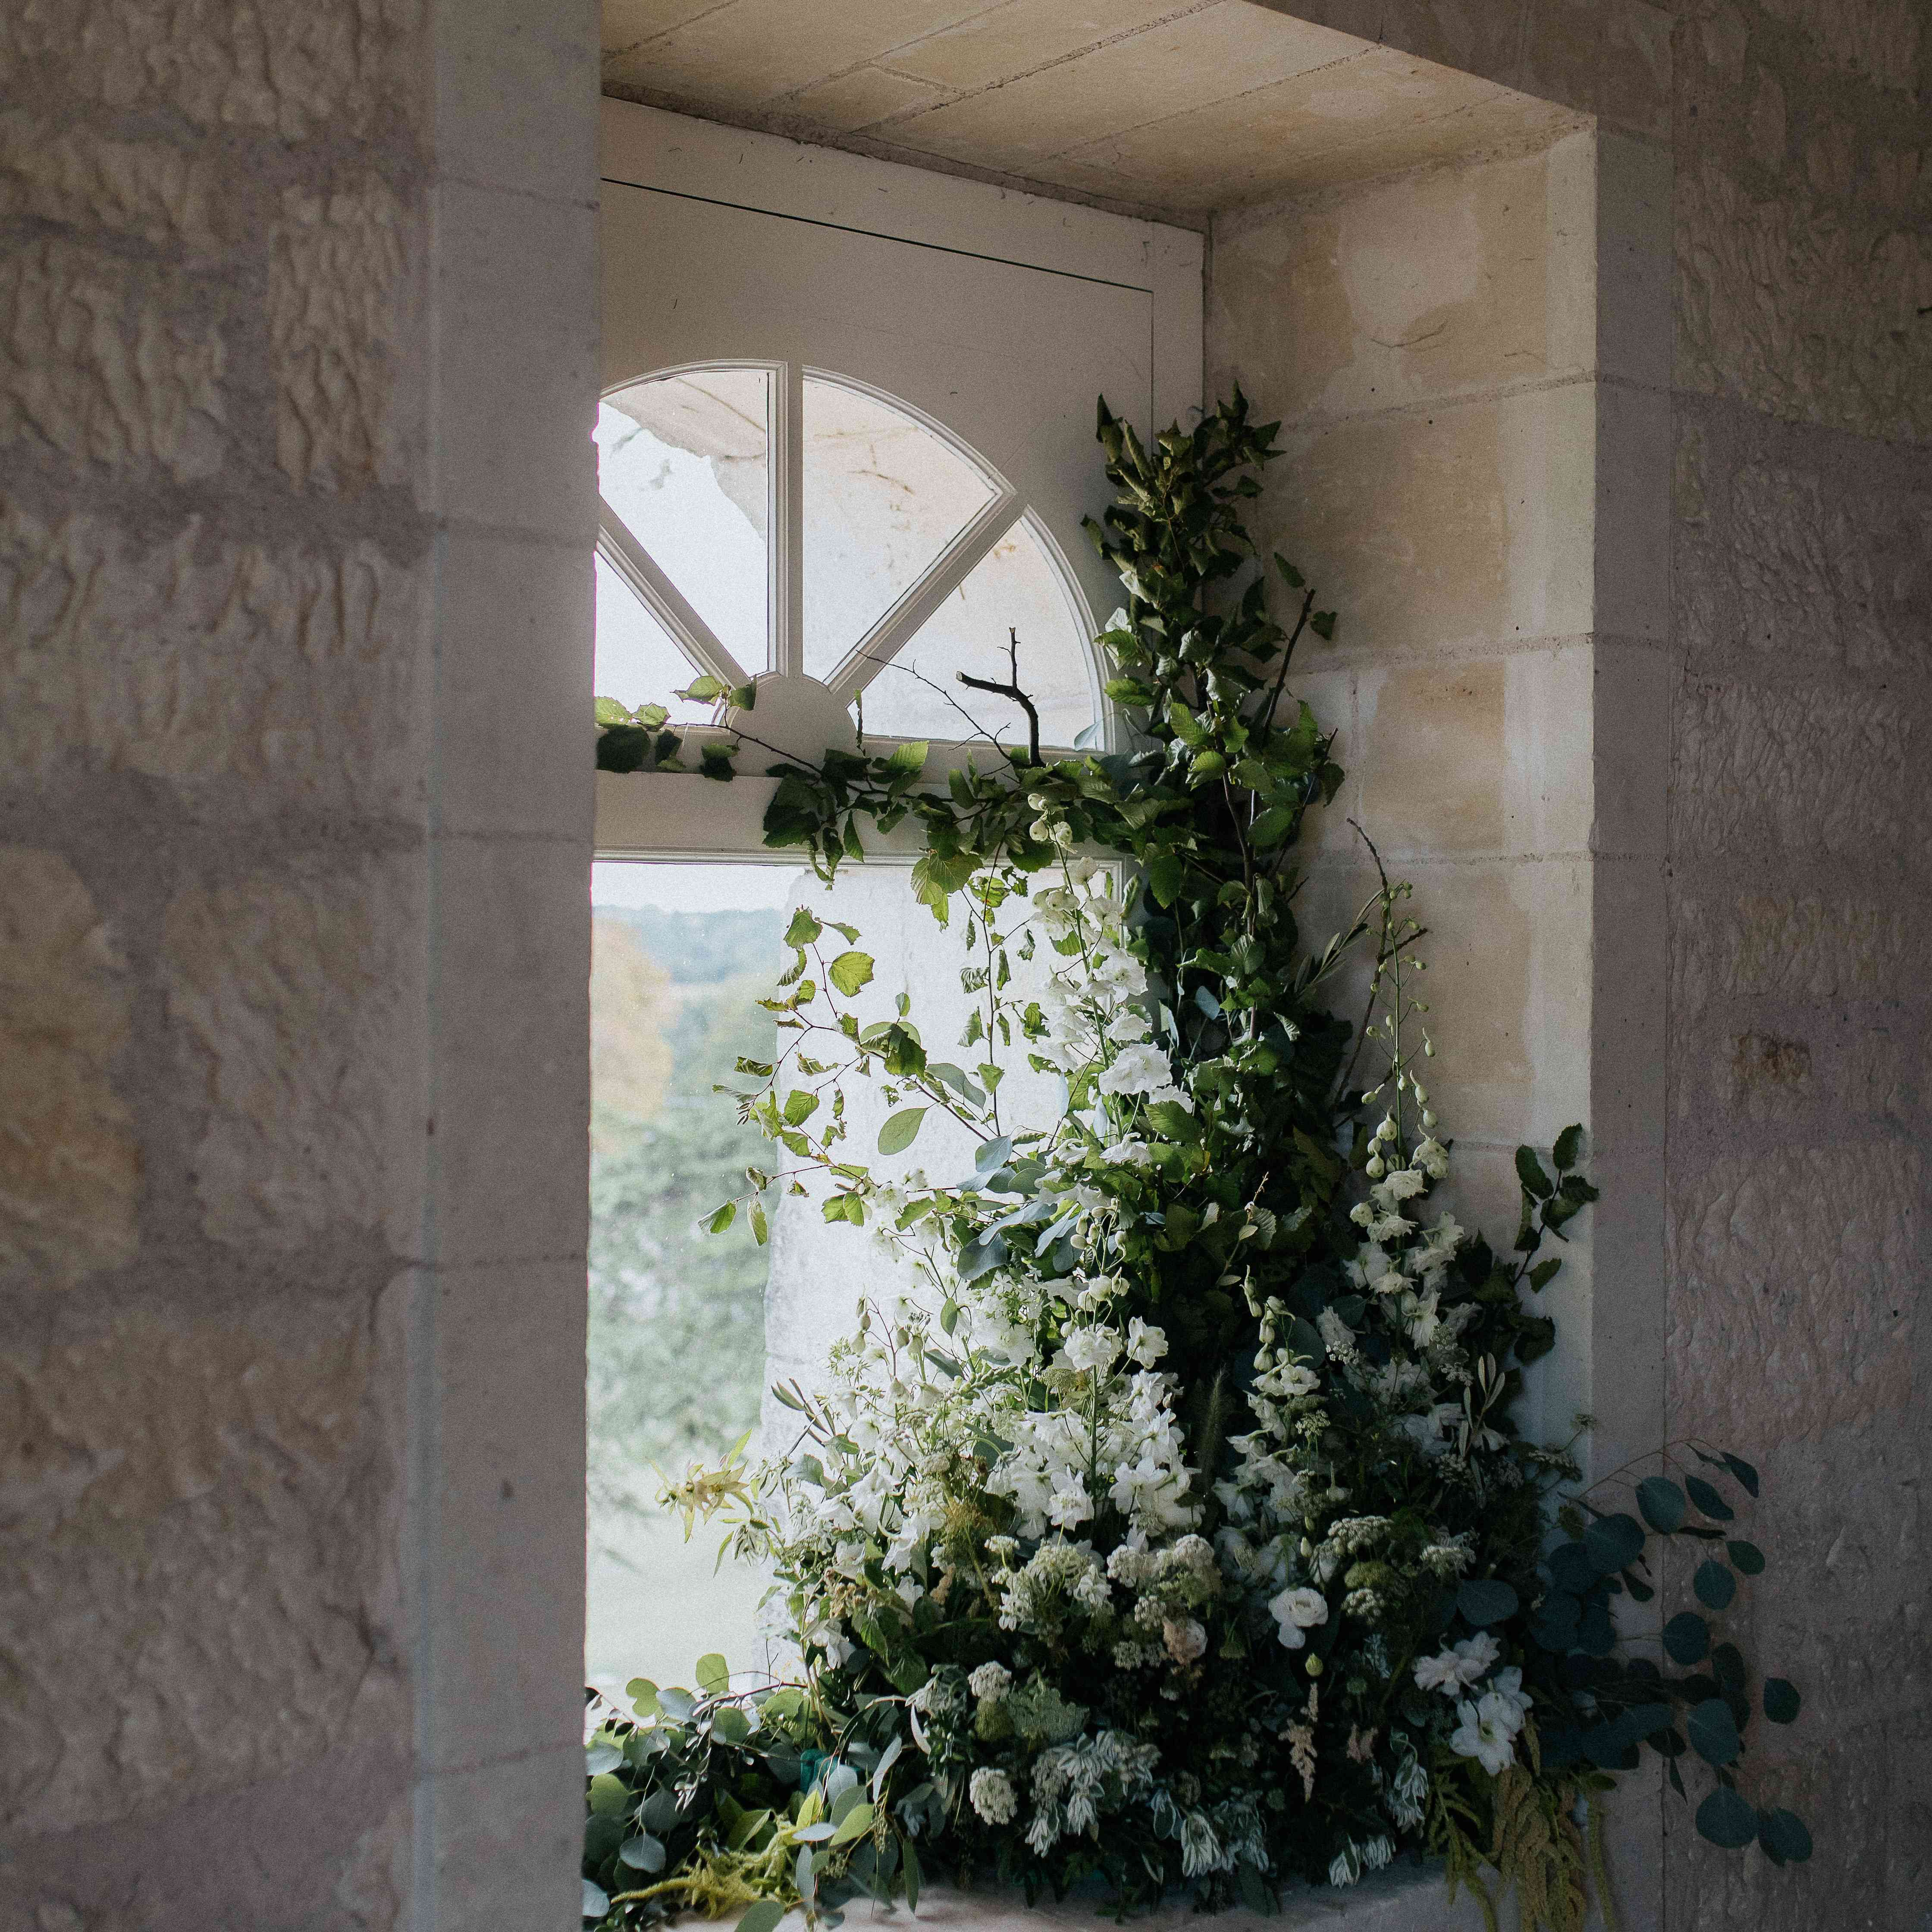 <p>greens and white flowers</p><br><br>